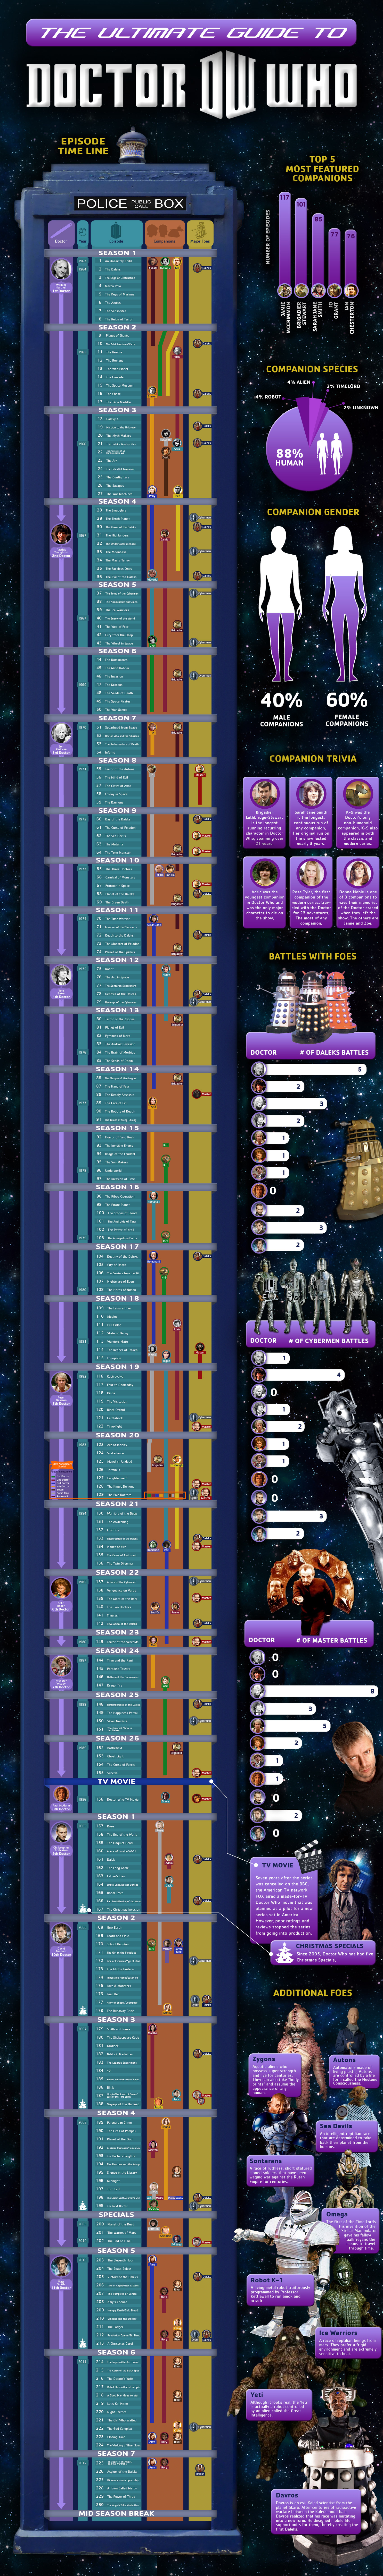 The Ultimate Guide To Doctor Who Infographic Best